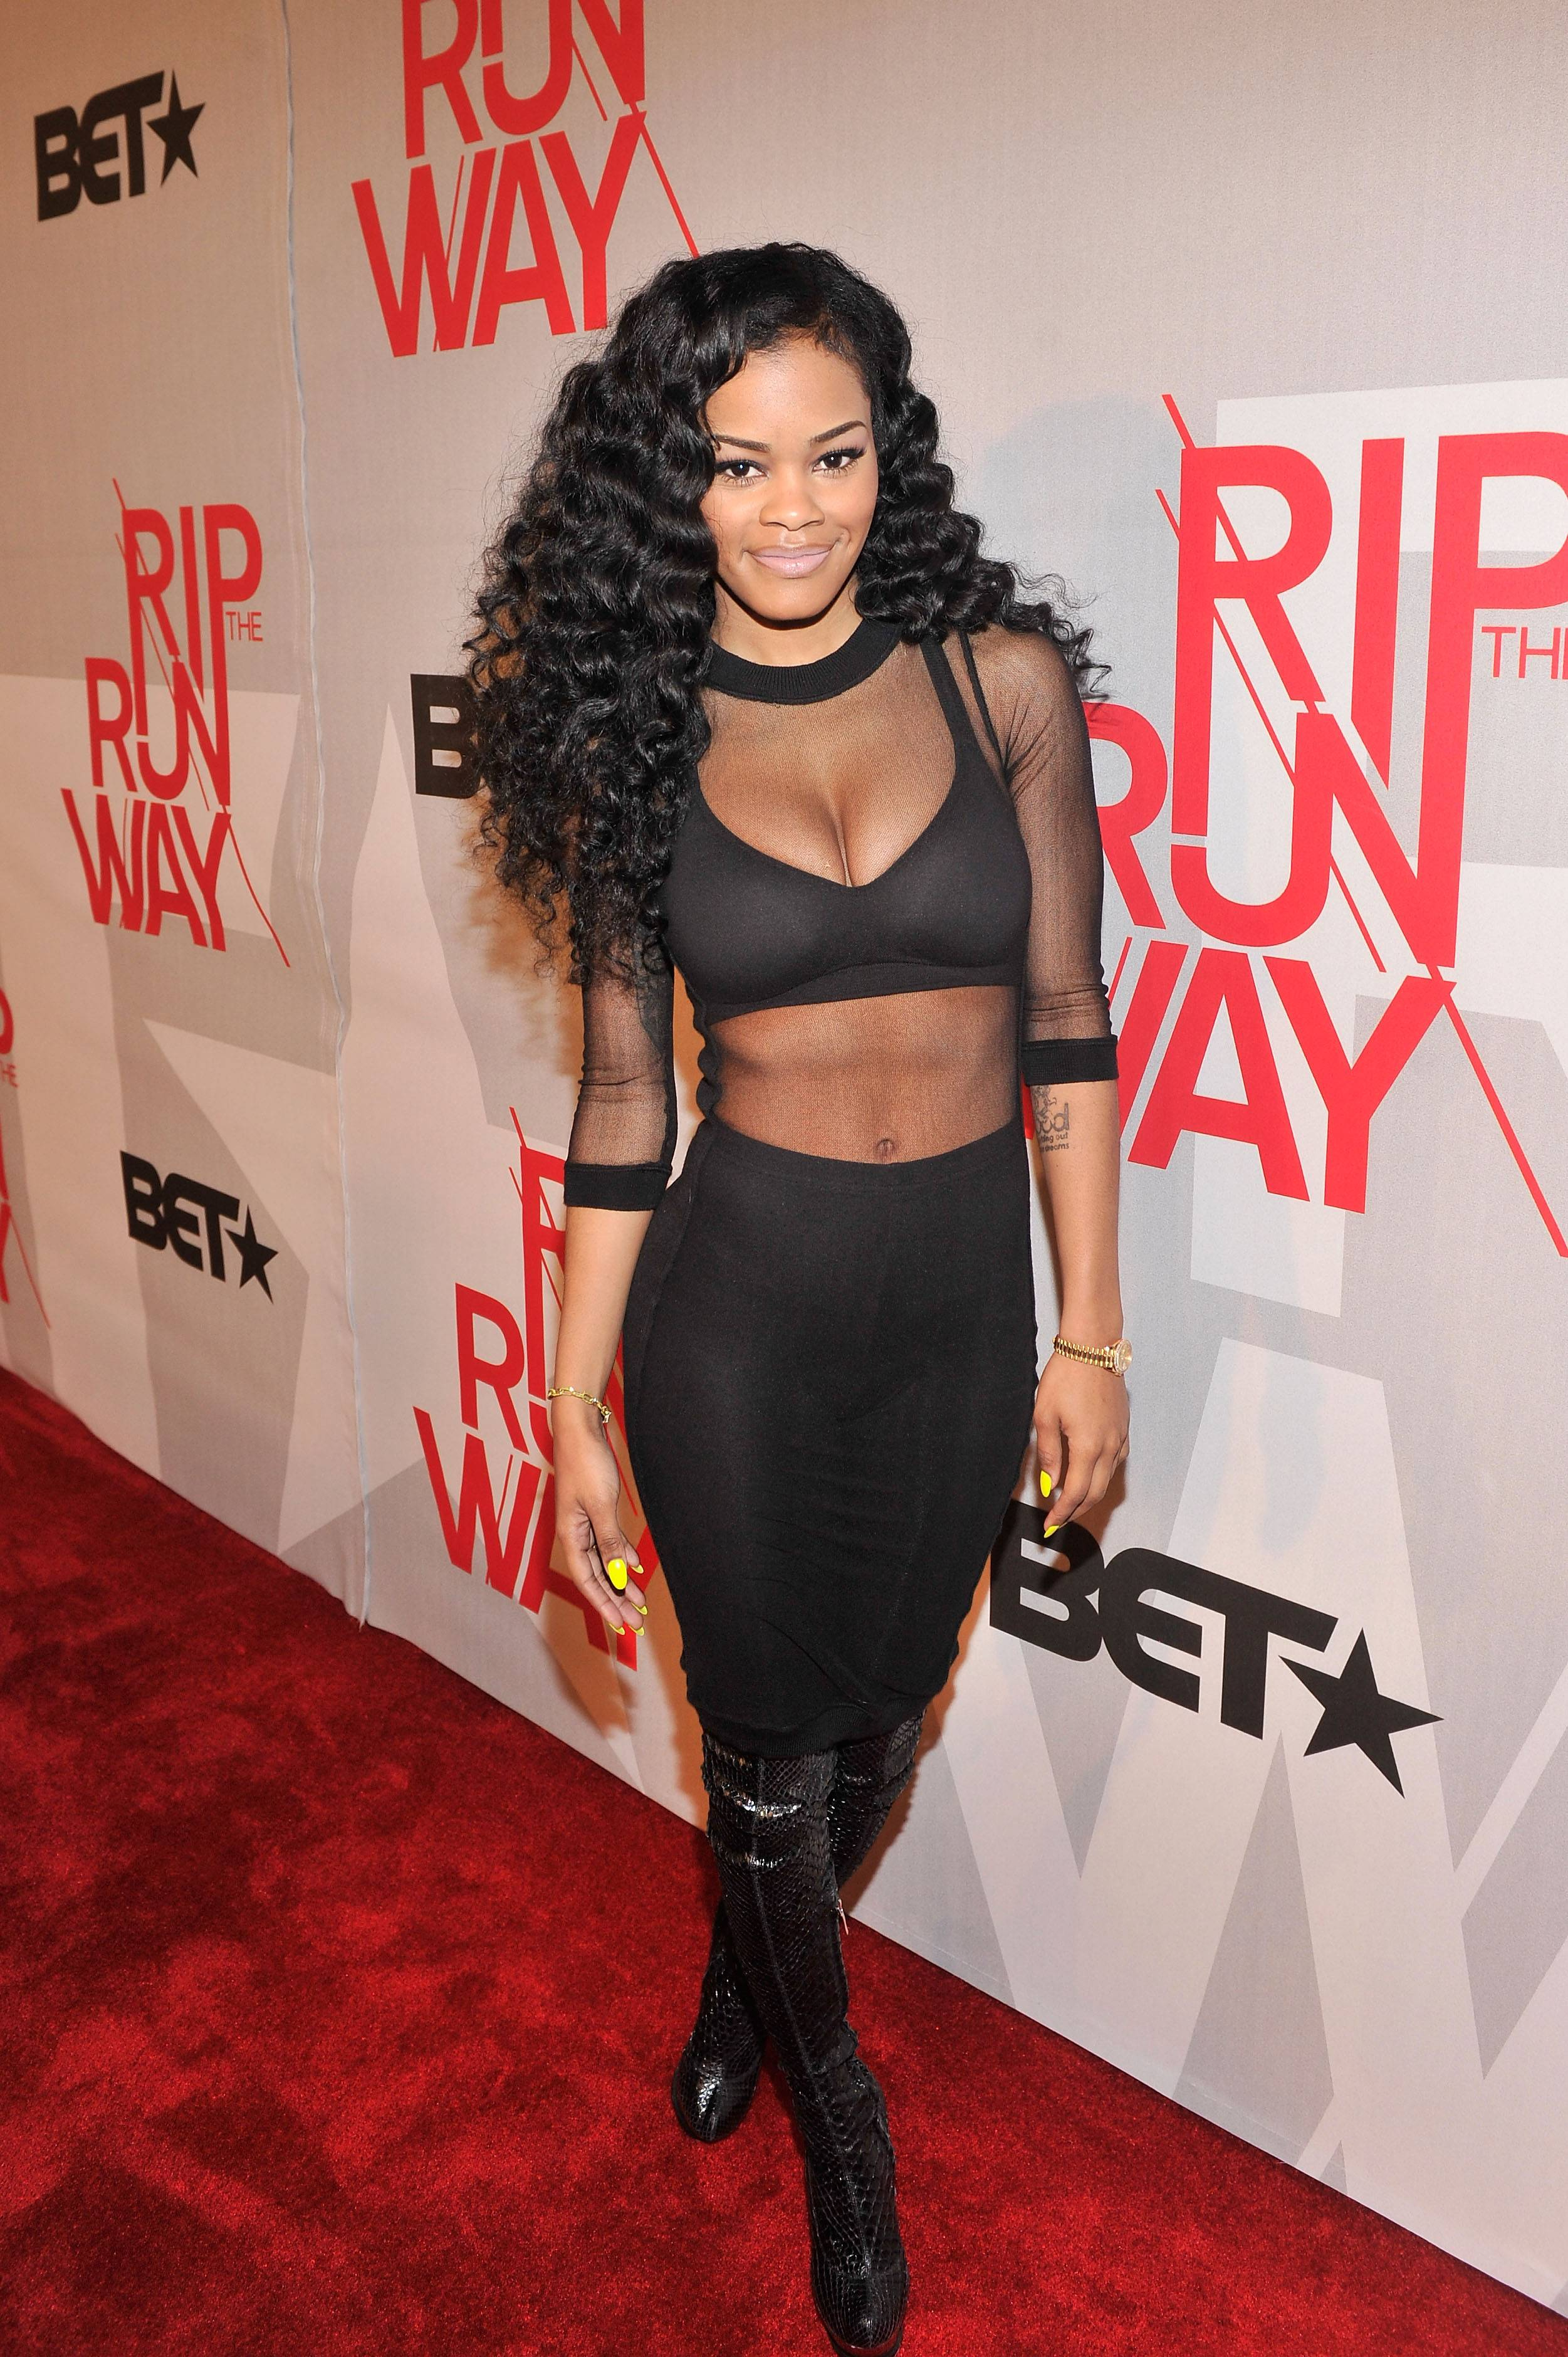 Teyana Taylor Officially Dropped - Rumors starting swirling the internet yesterday about Teyana Taylor being dropped from Reebok for her Twitter feud with Rihanna in September. After the two ladies took nasty jabs at one another, Teyana posted a photo of Rih's bruised face post the Chris Brown altercation from a few years back. Today, Reebok officially announced severing ties with the artist by telling MadameNoire.com the following:  ?We have ended our relationship with Teyana Taylor and do not have any upcoming product launches with her. ?All I can say is that adidas partners with athletes and artists who blend well with our brand values. We evaluate our relationships with partners based on the values we hold at adidas and we don?t condone violence of any kind.?Hopefully this is a lesson learned by all that using words in a private arena may be better than airing dirty laundry on...